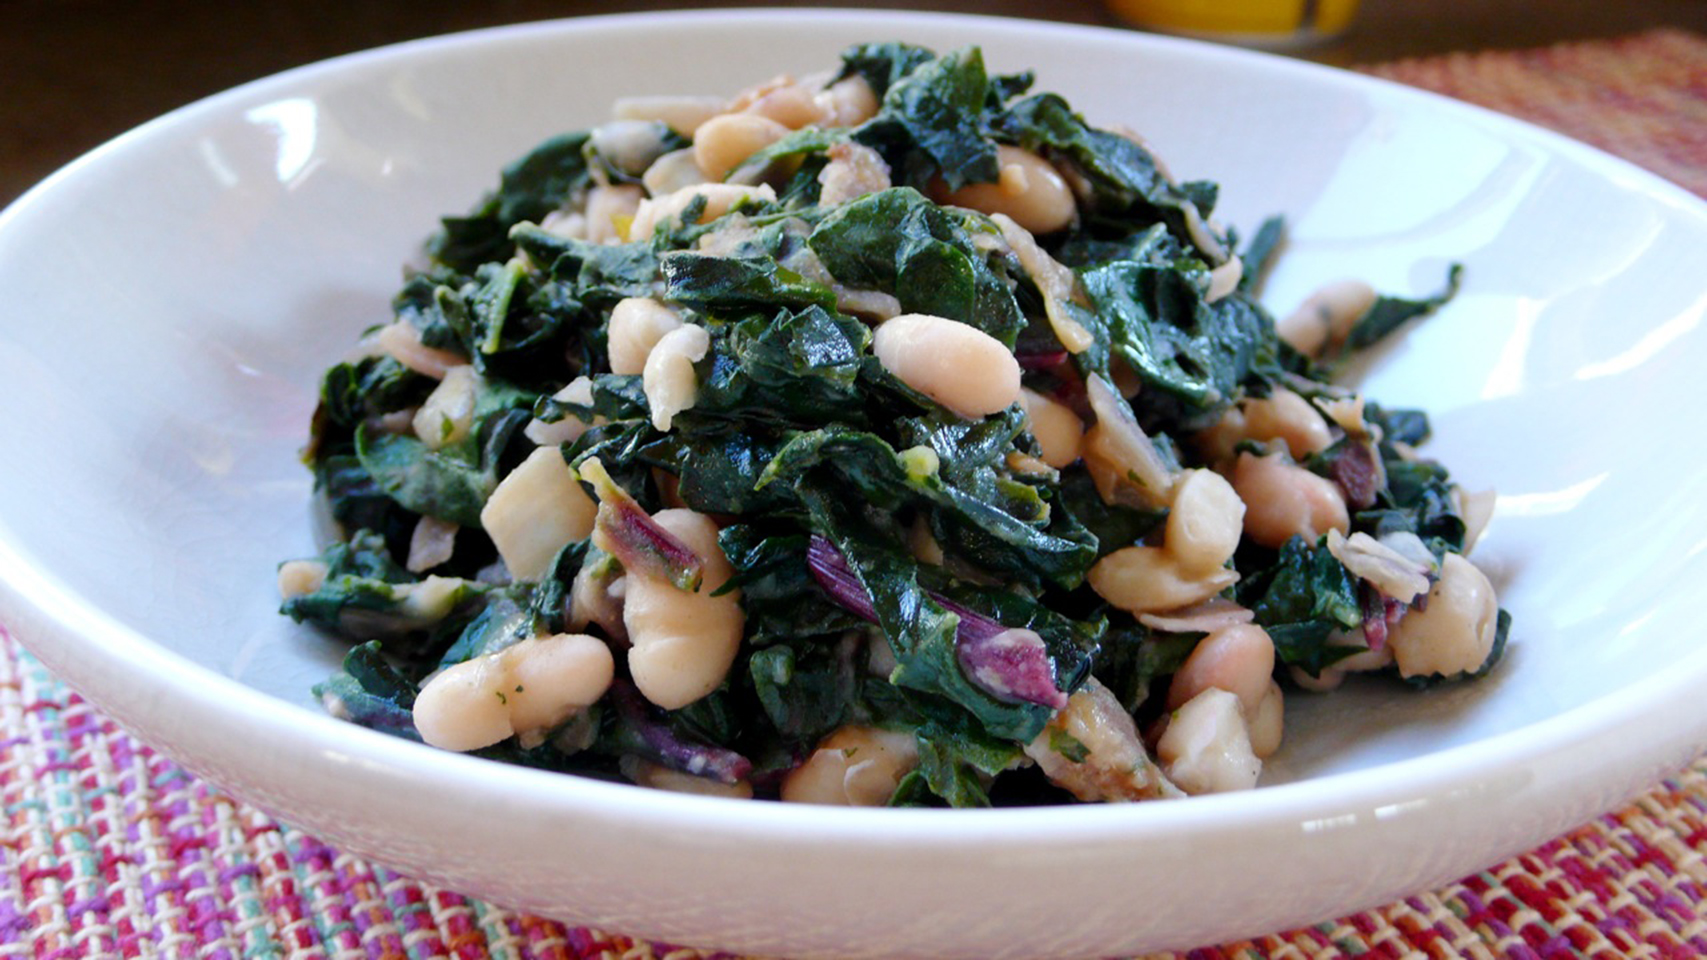 """Here's a forgiving recipe that's a great way to get your greens! """"I eat it as a main dish, but this could easily be fit for four to six sides,"""" says recipe submitter Diana. """"Feel free to substitute different kinds of greens depending on what's in season, and use regular diced bacon instead of pancetta if desired."""""""